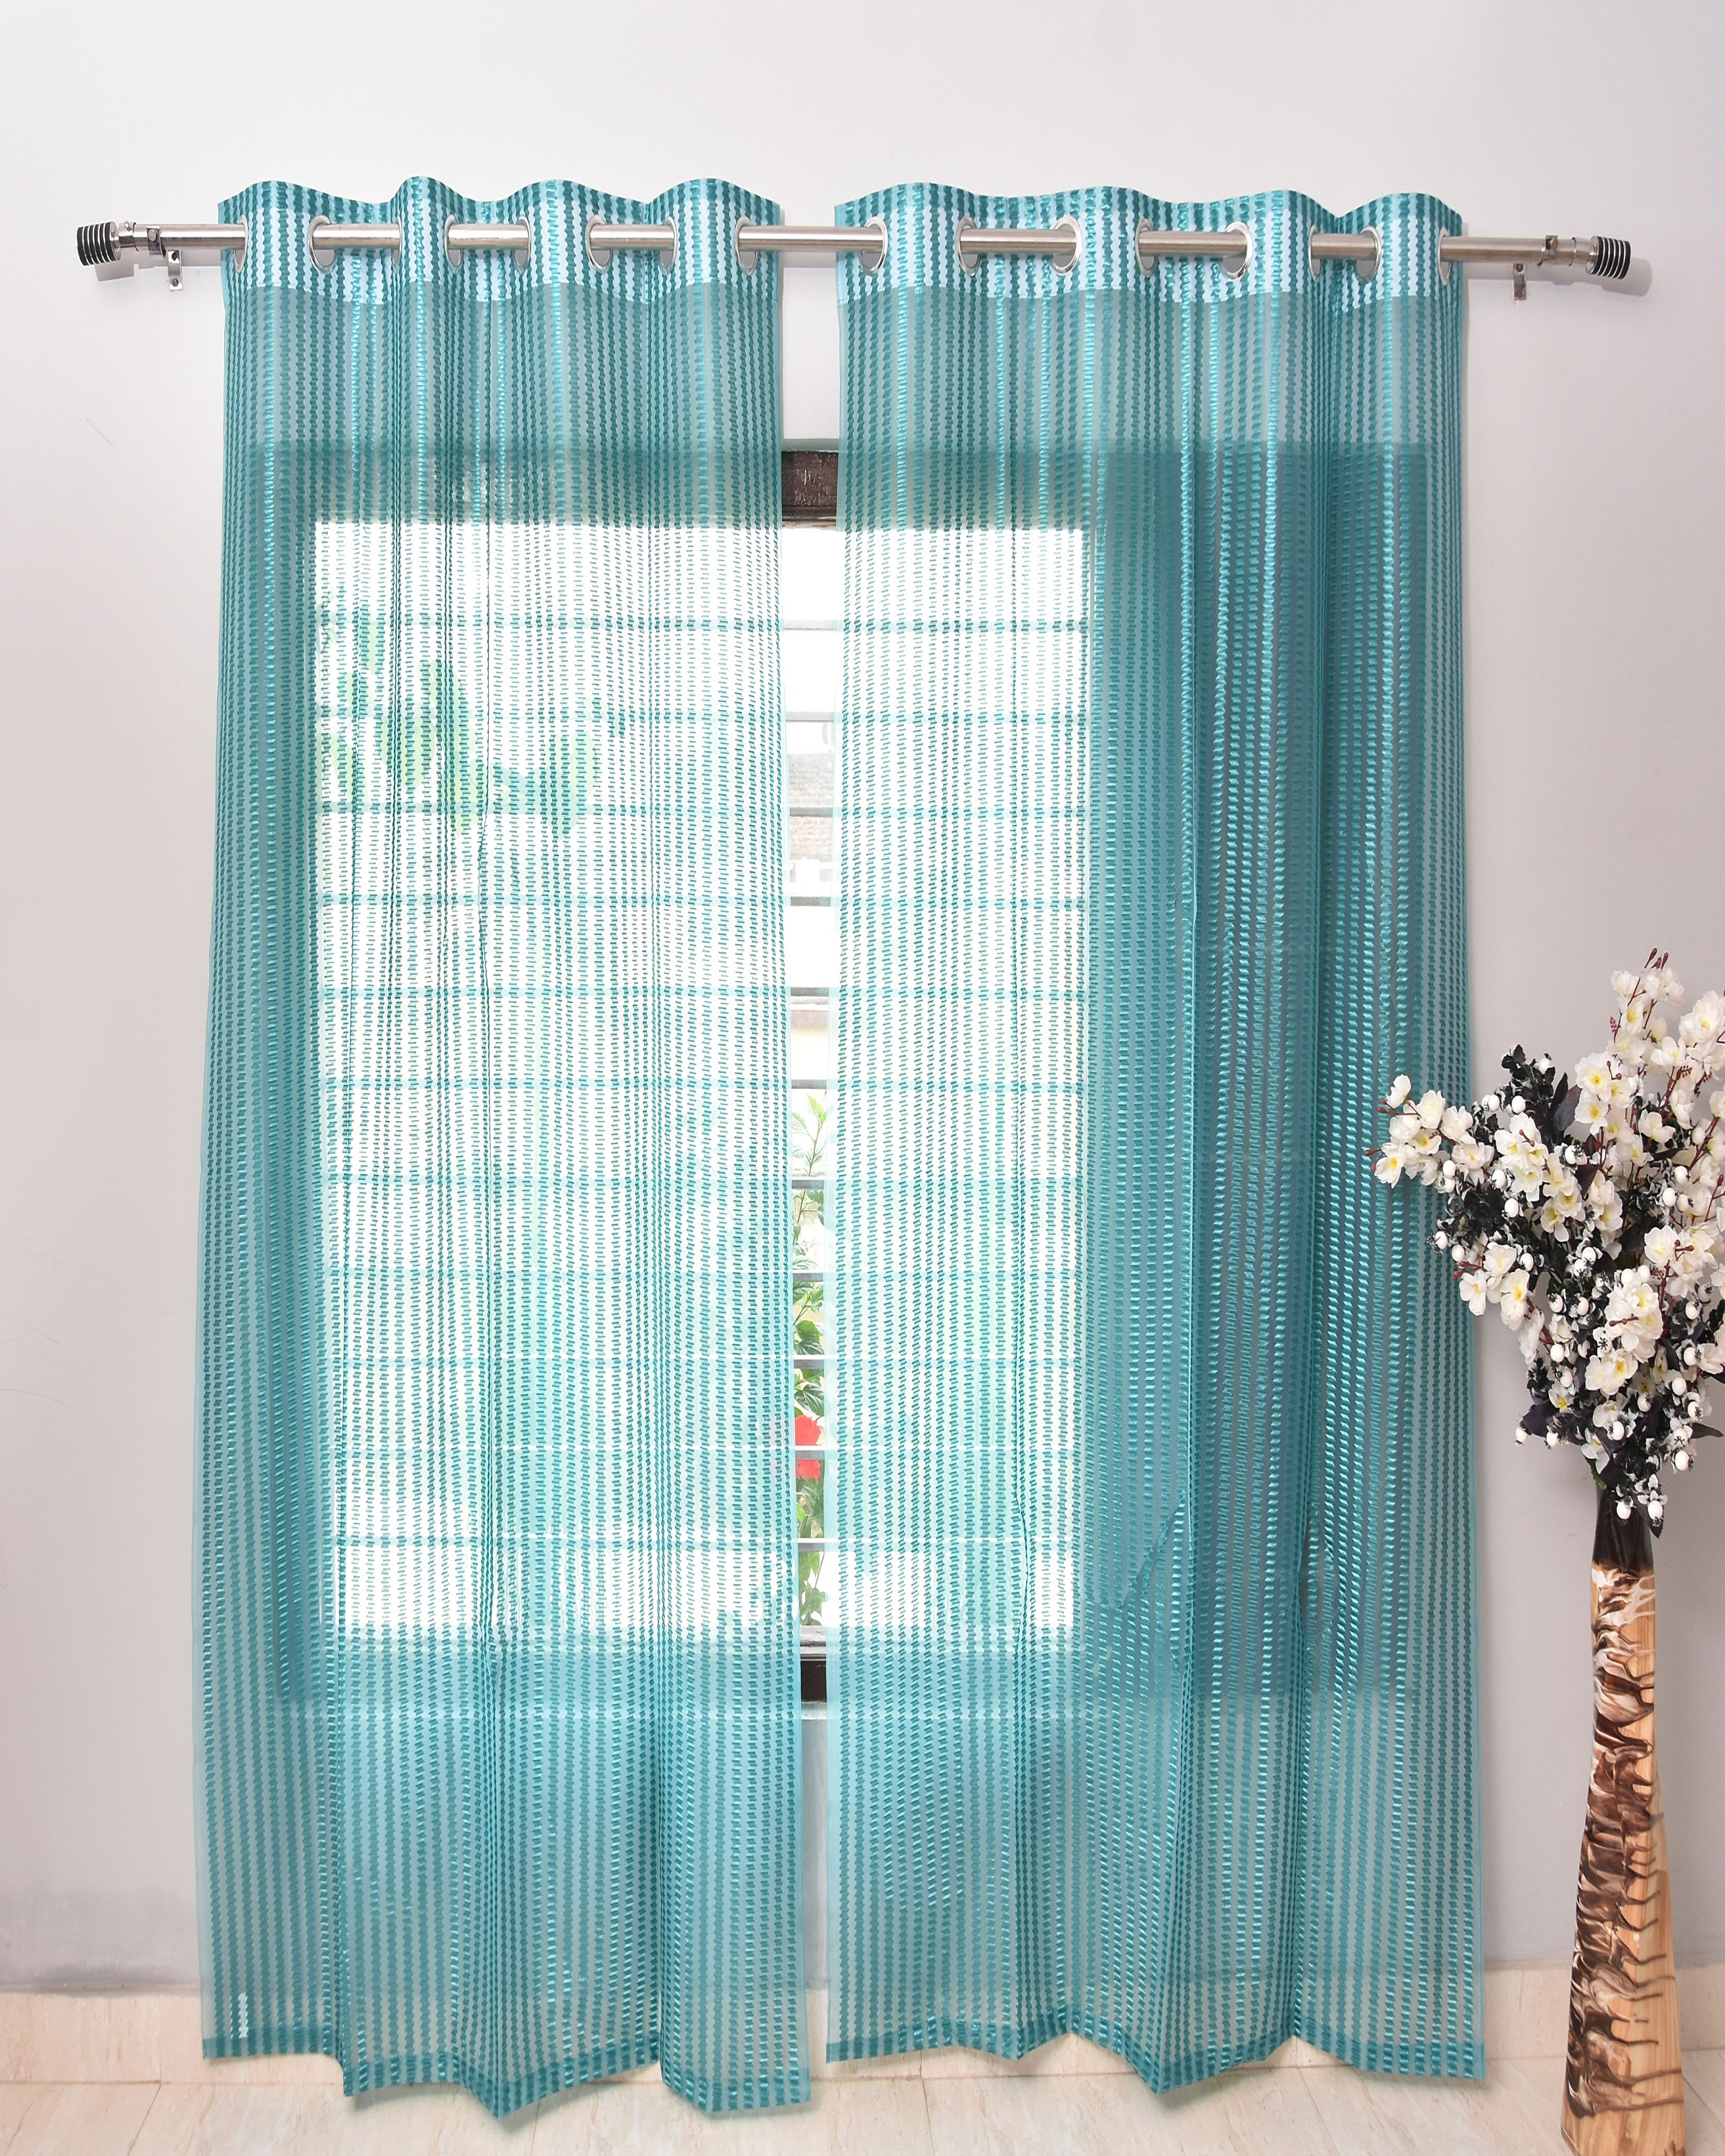 Homefab India 2 Piece Polyester  Sheer Curtain  (Setof2HF760TissueFlipFlopAqua)